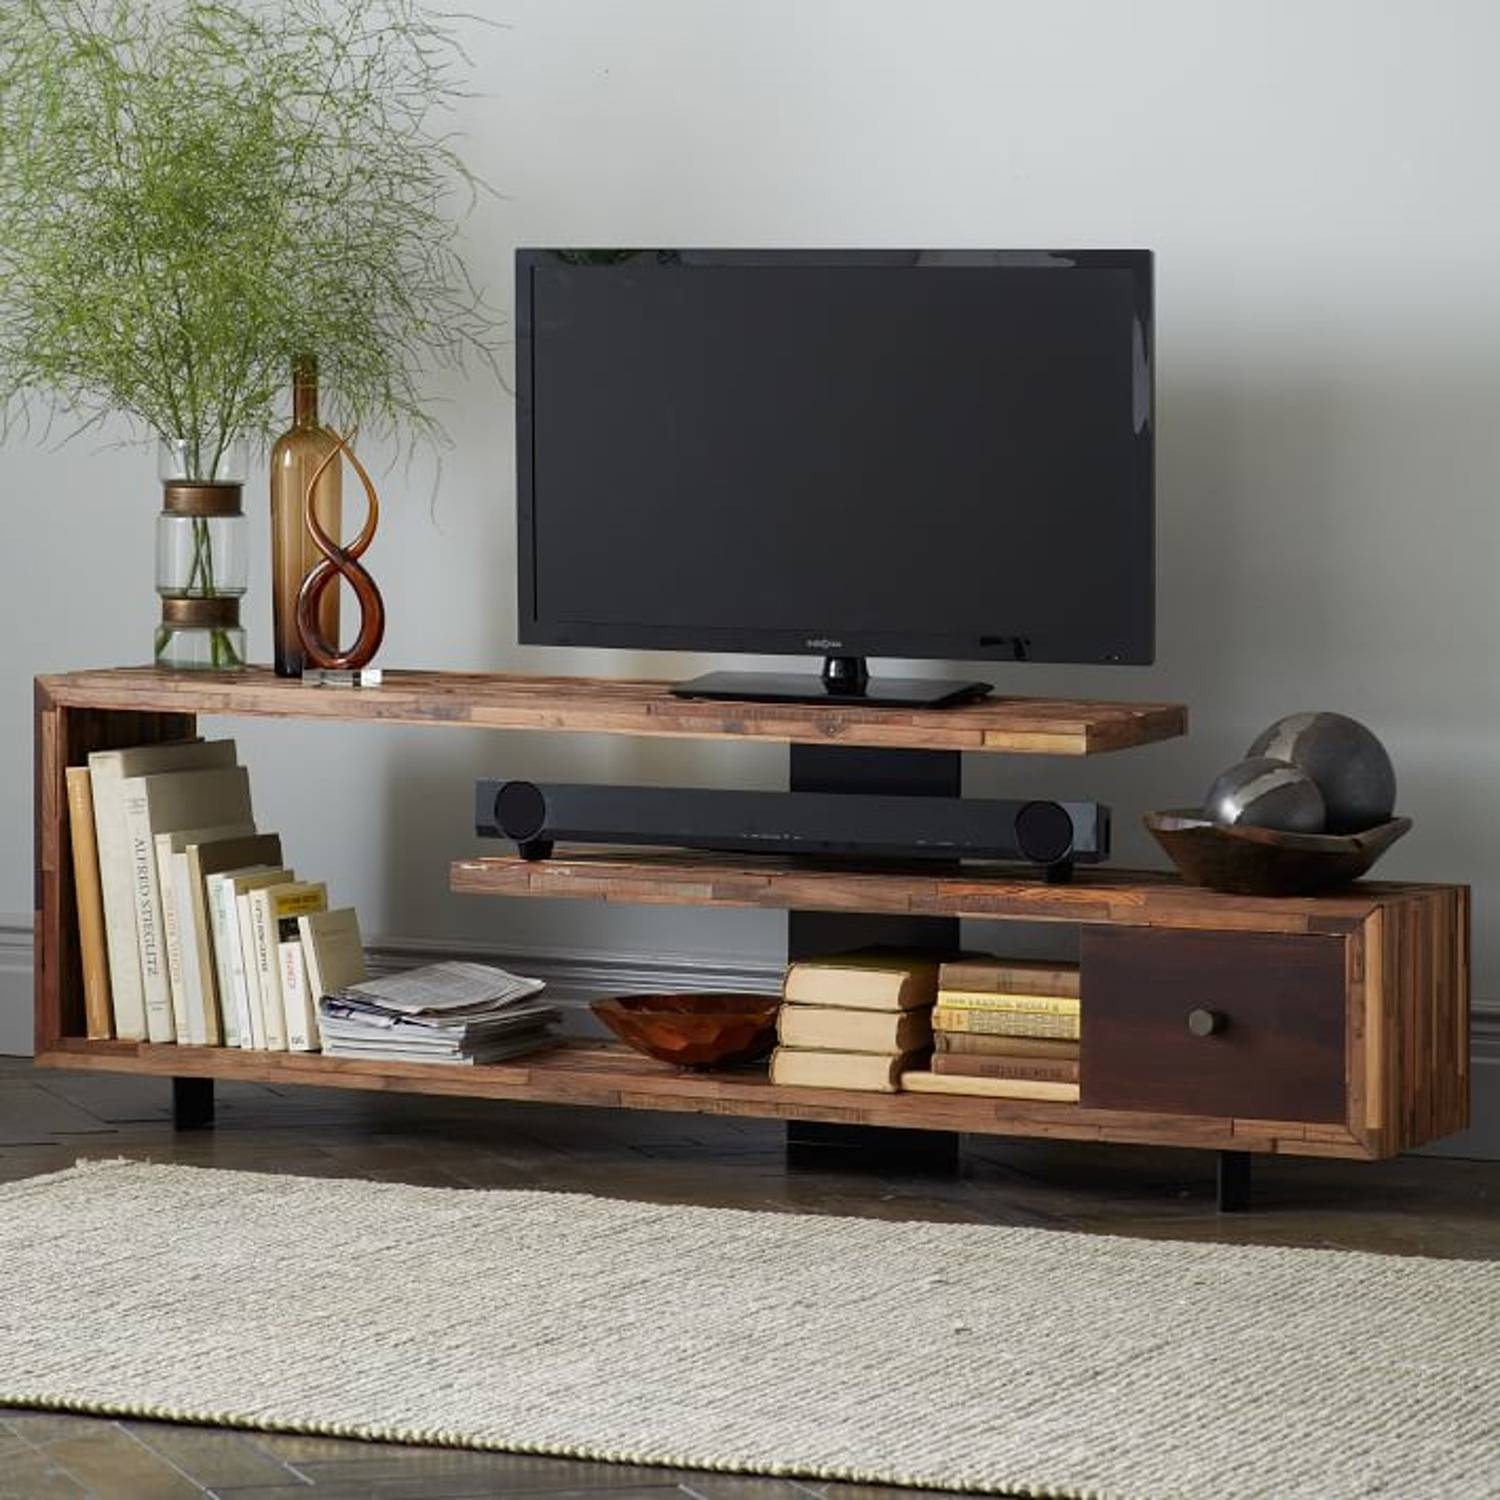 Luxury Affordable Tv Stands 71 In Small Home Remodel Ideas With inside Luxury Tv Stands (Image 9 of 15)